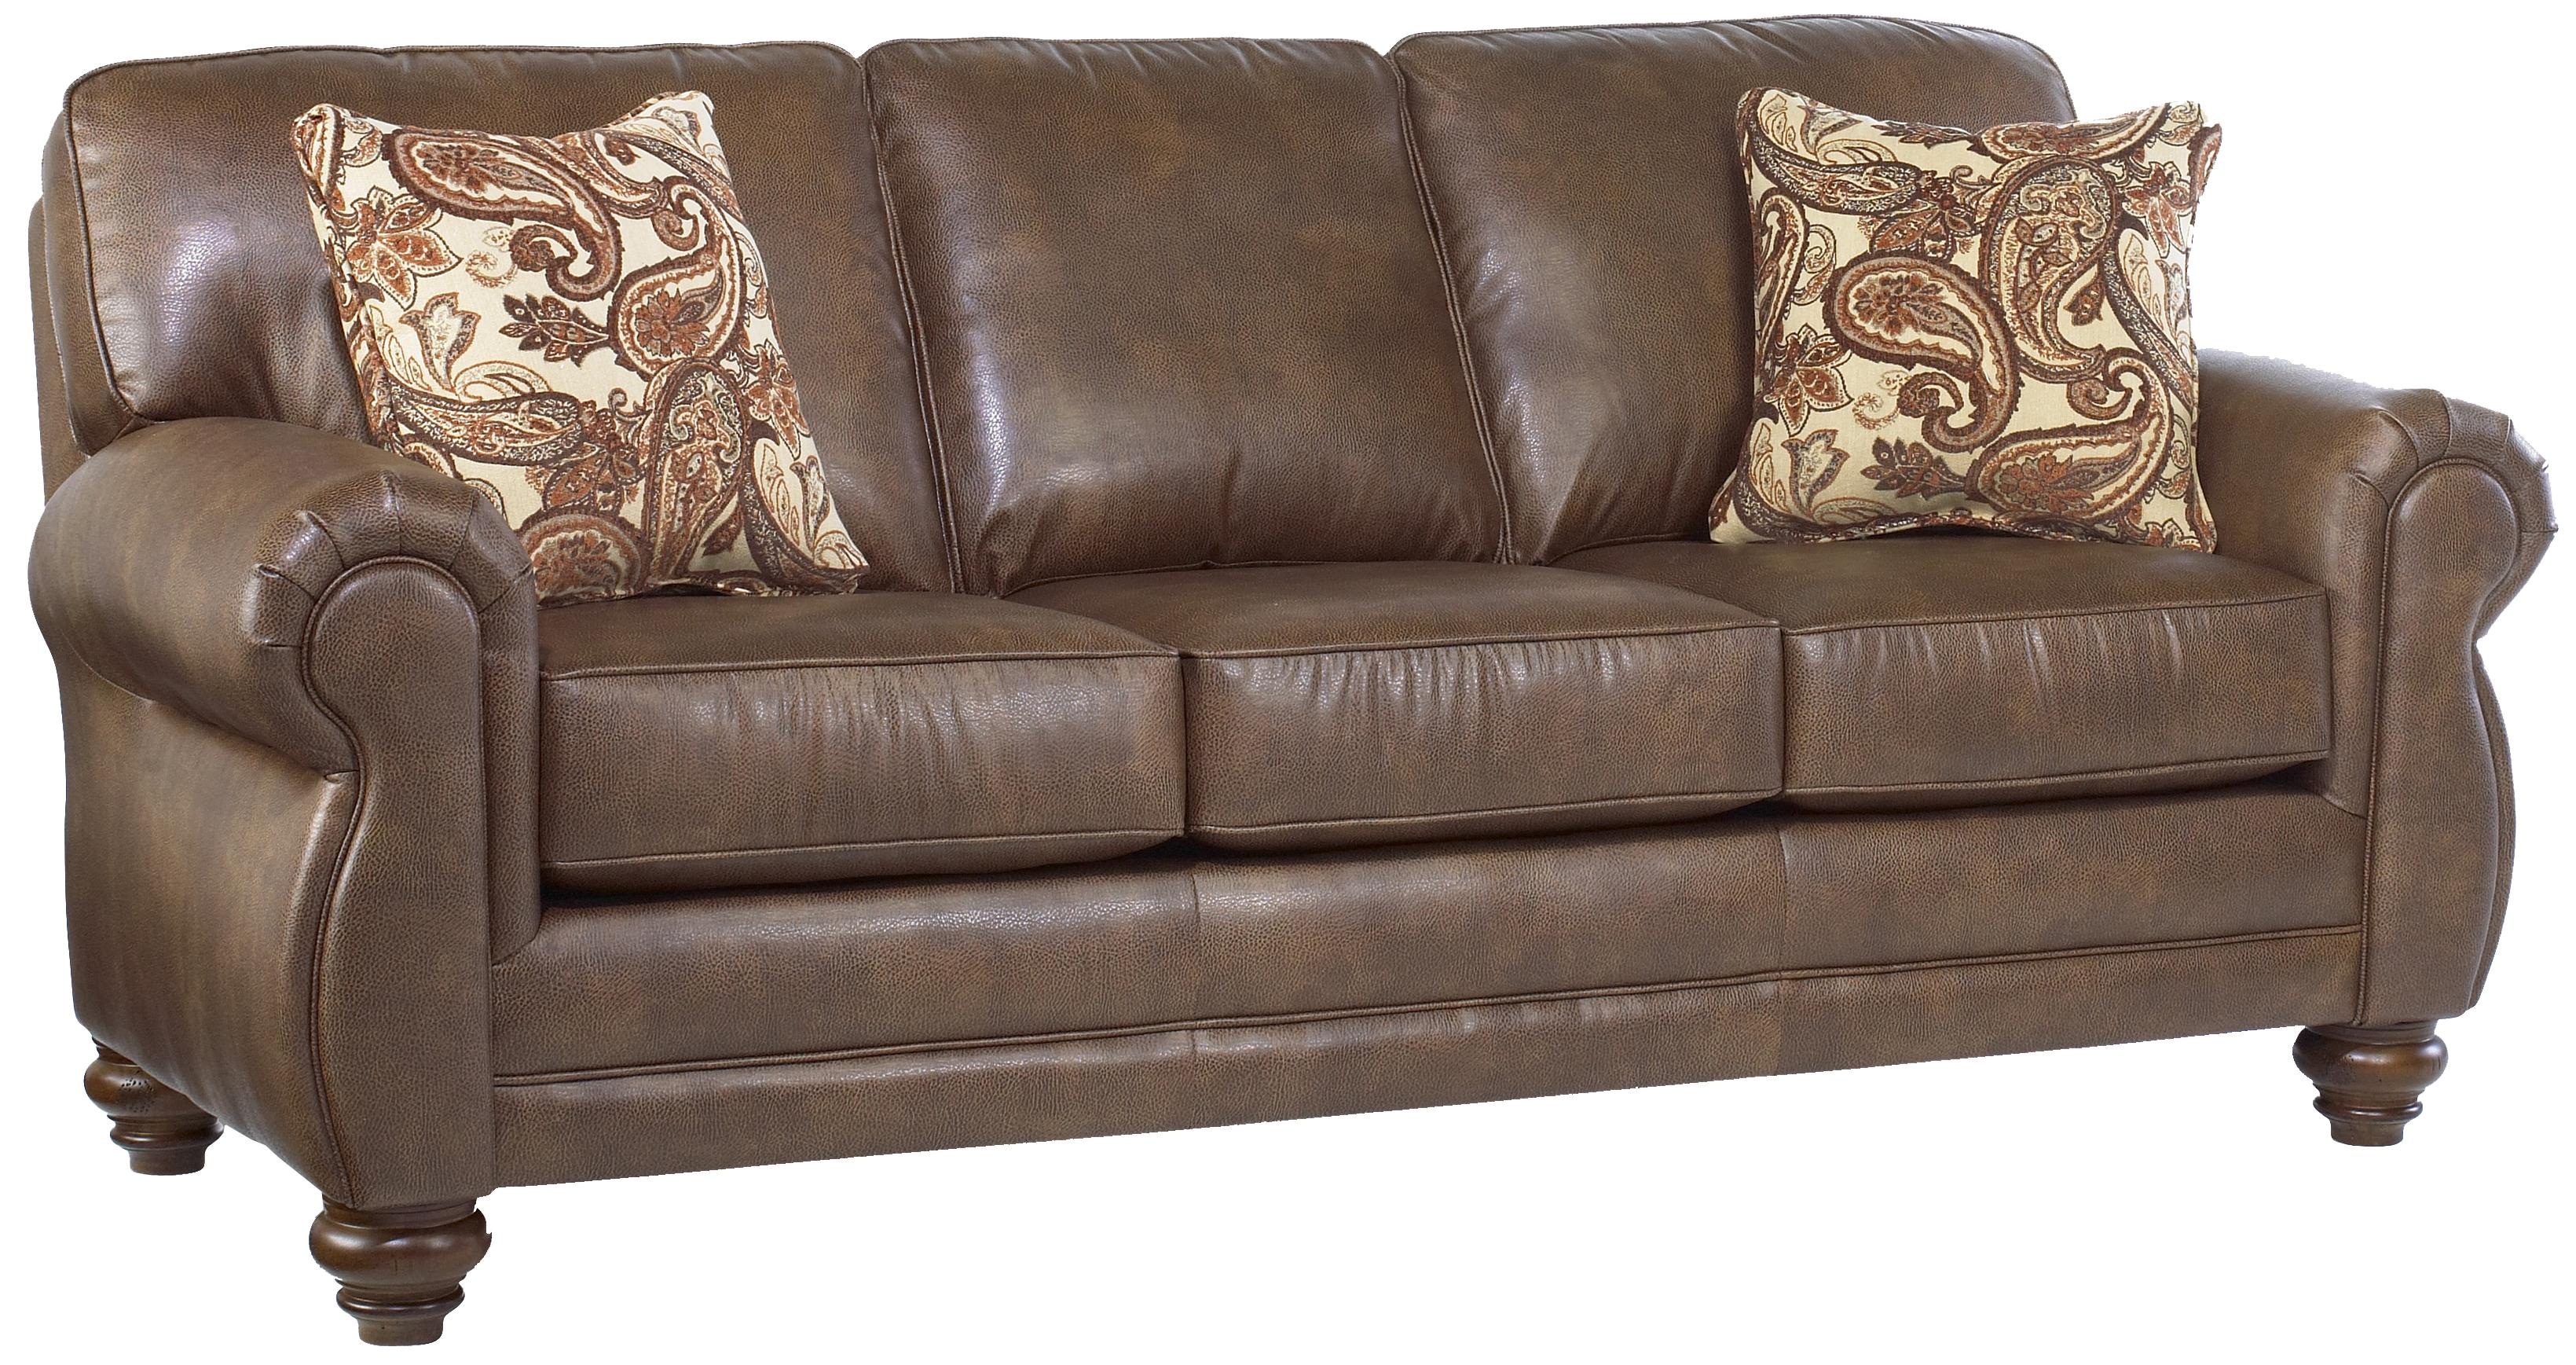 Best Home Furnishings Fitzpatrick Stationary Sofa - Item Number: S63DP